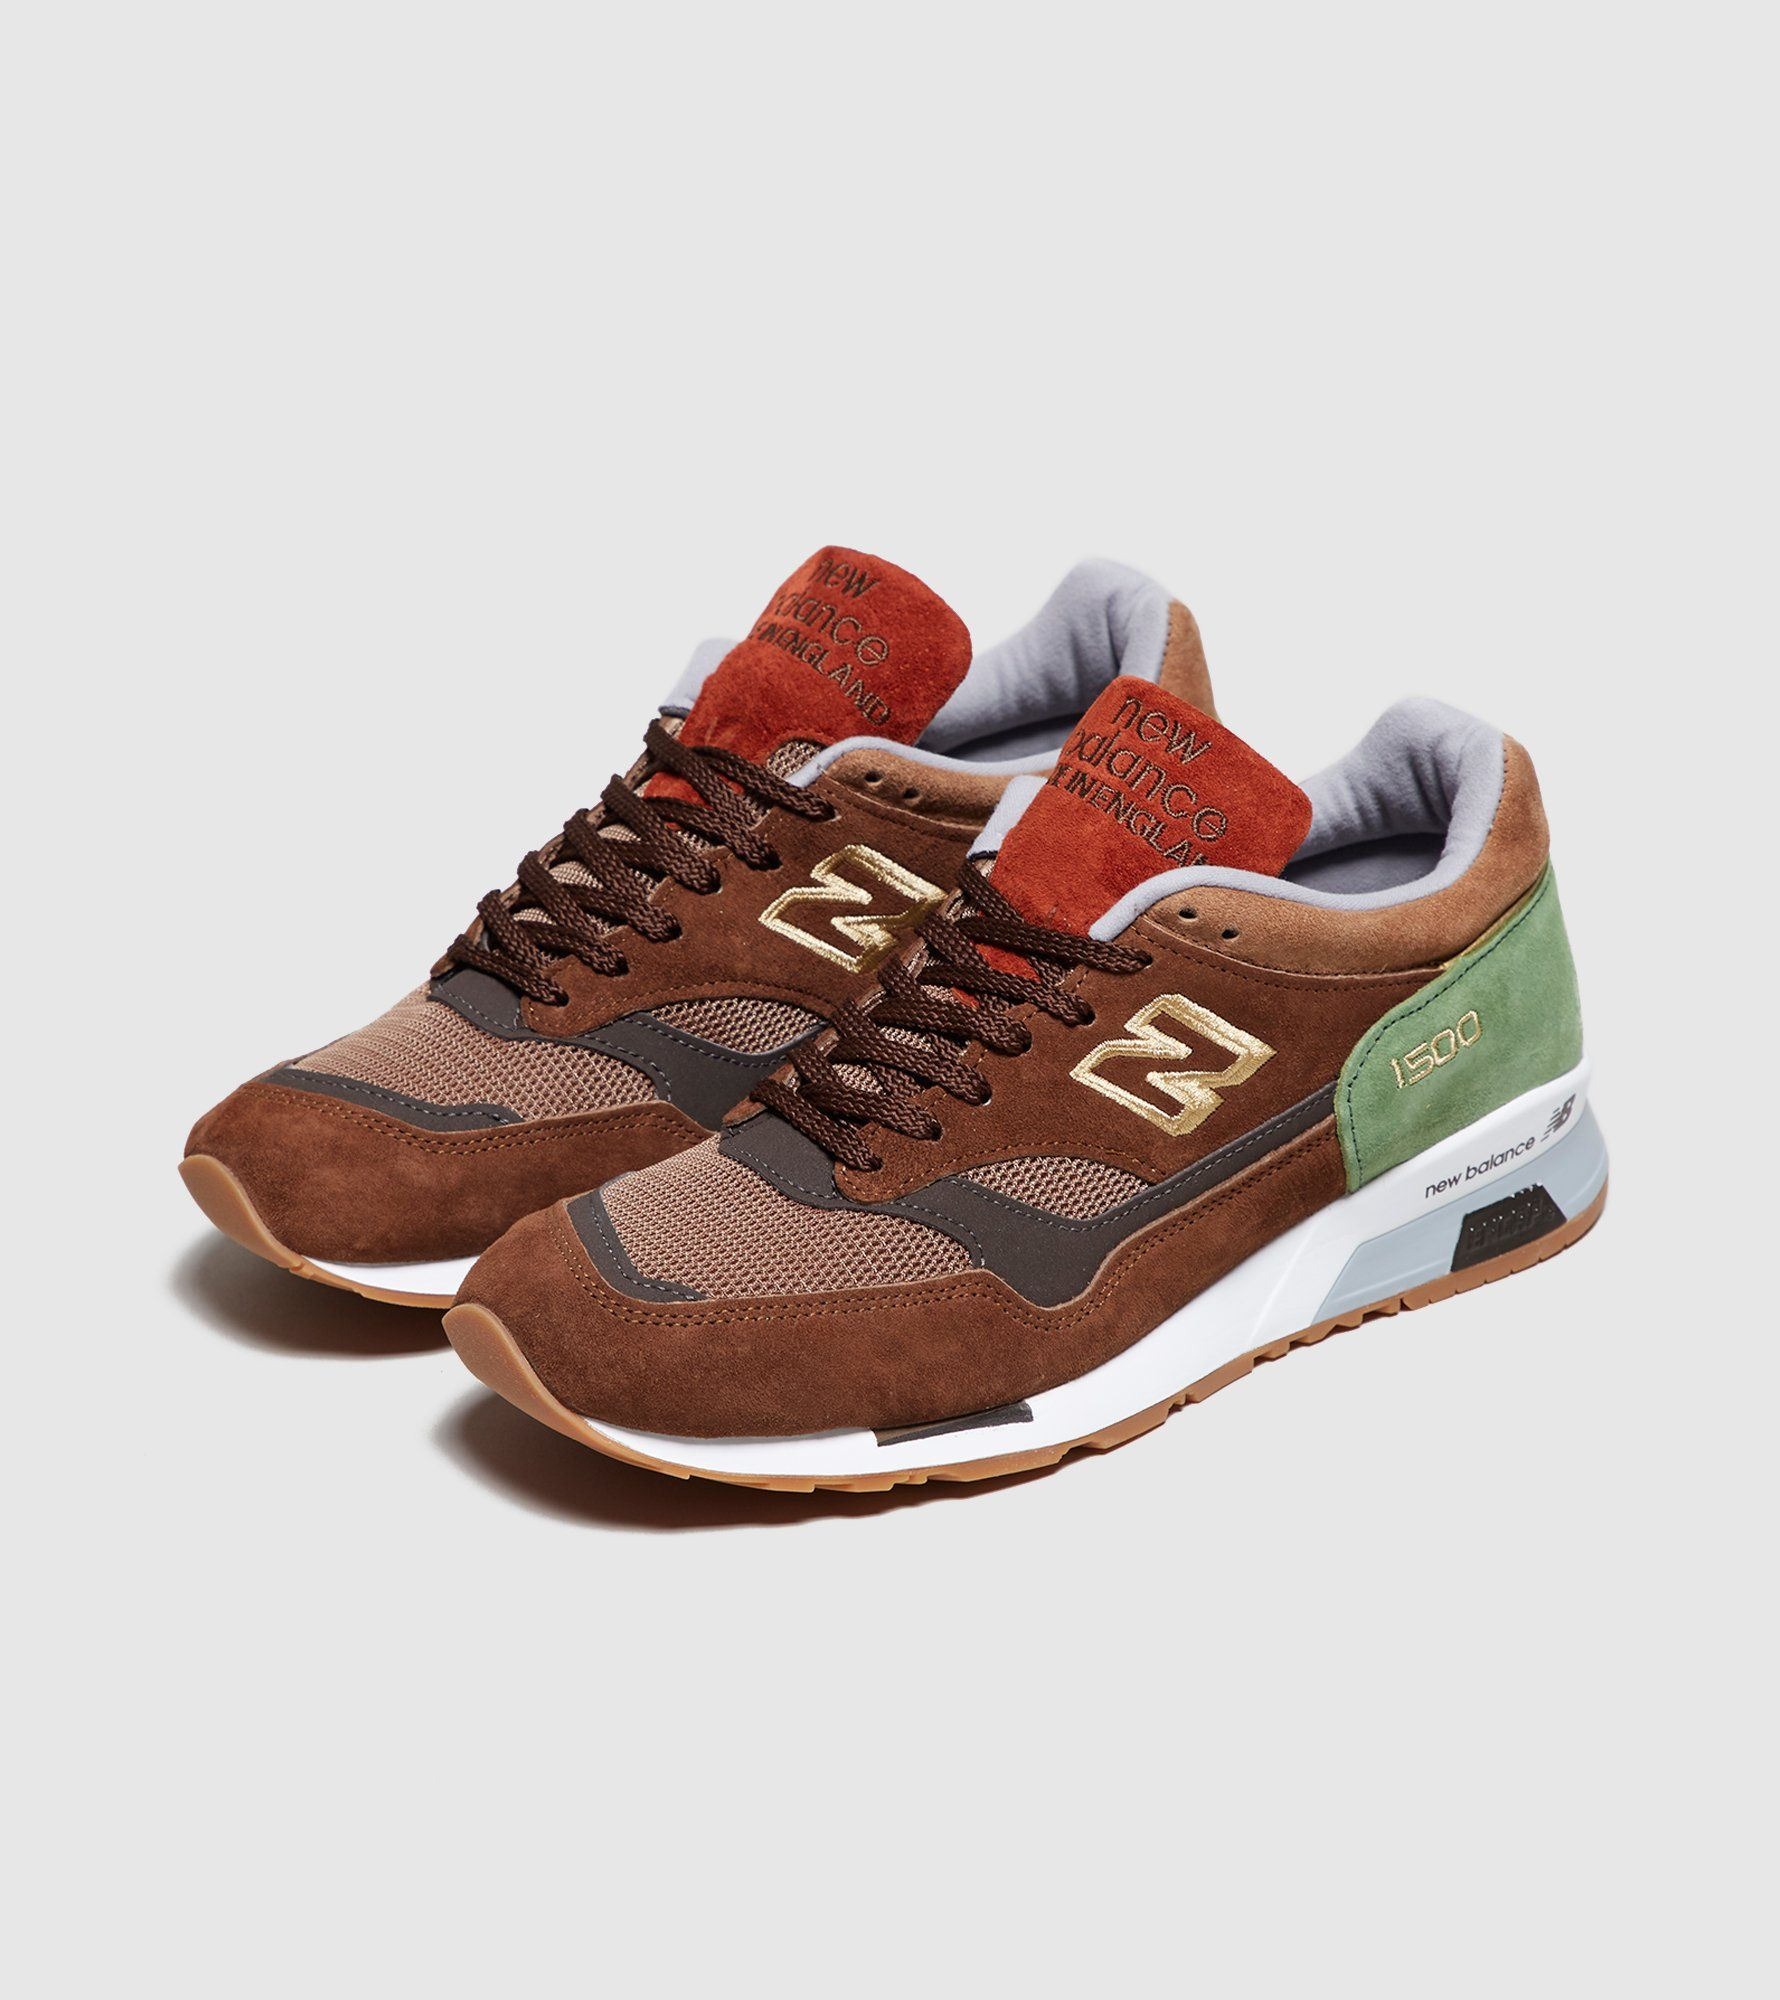 New Balance 1500 - Made in England 'Coastal Cuisine'